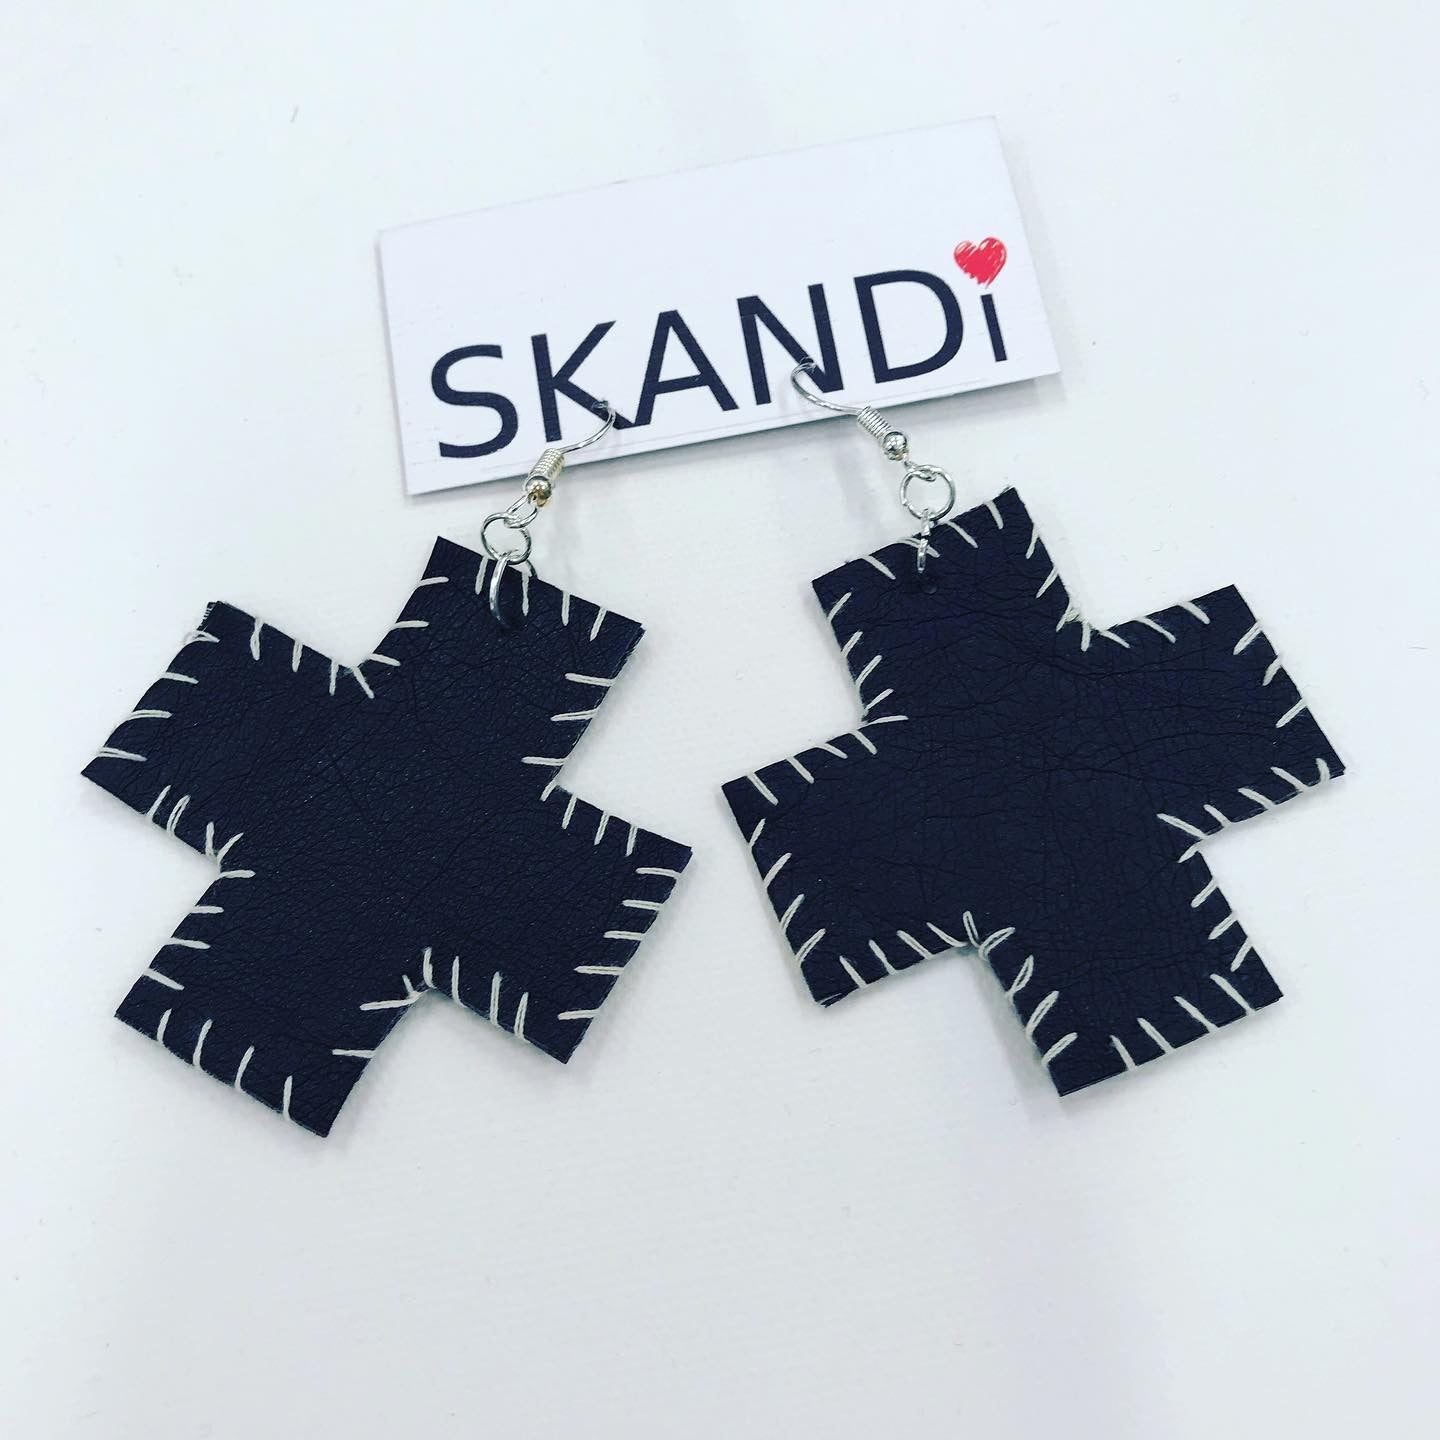 The SKANDi ➕ Drop Earrings